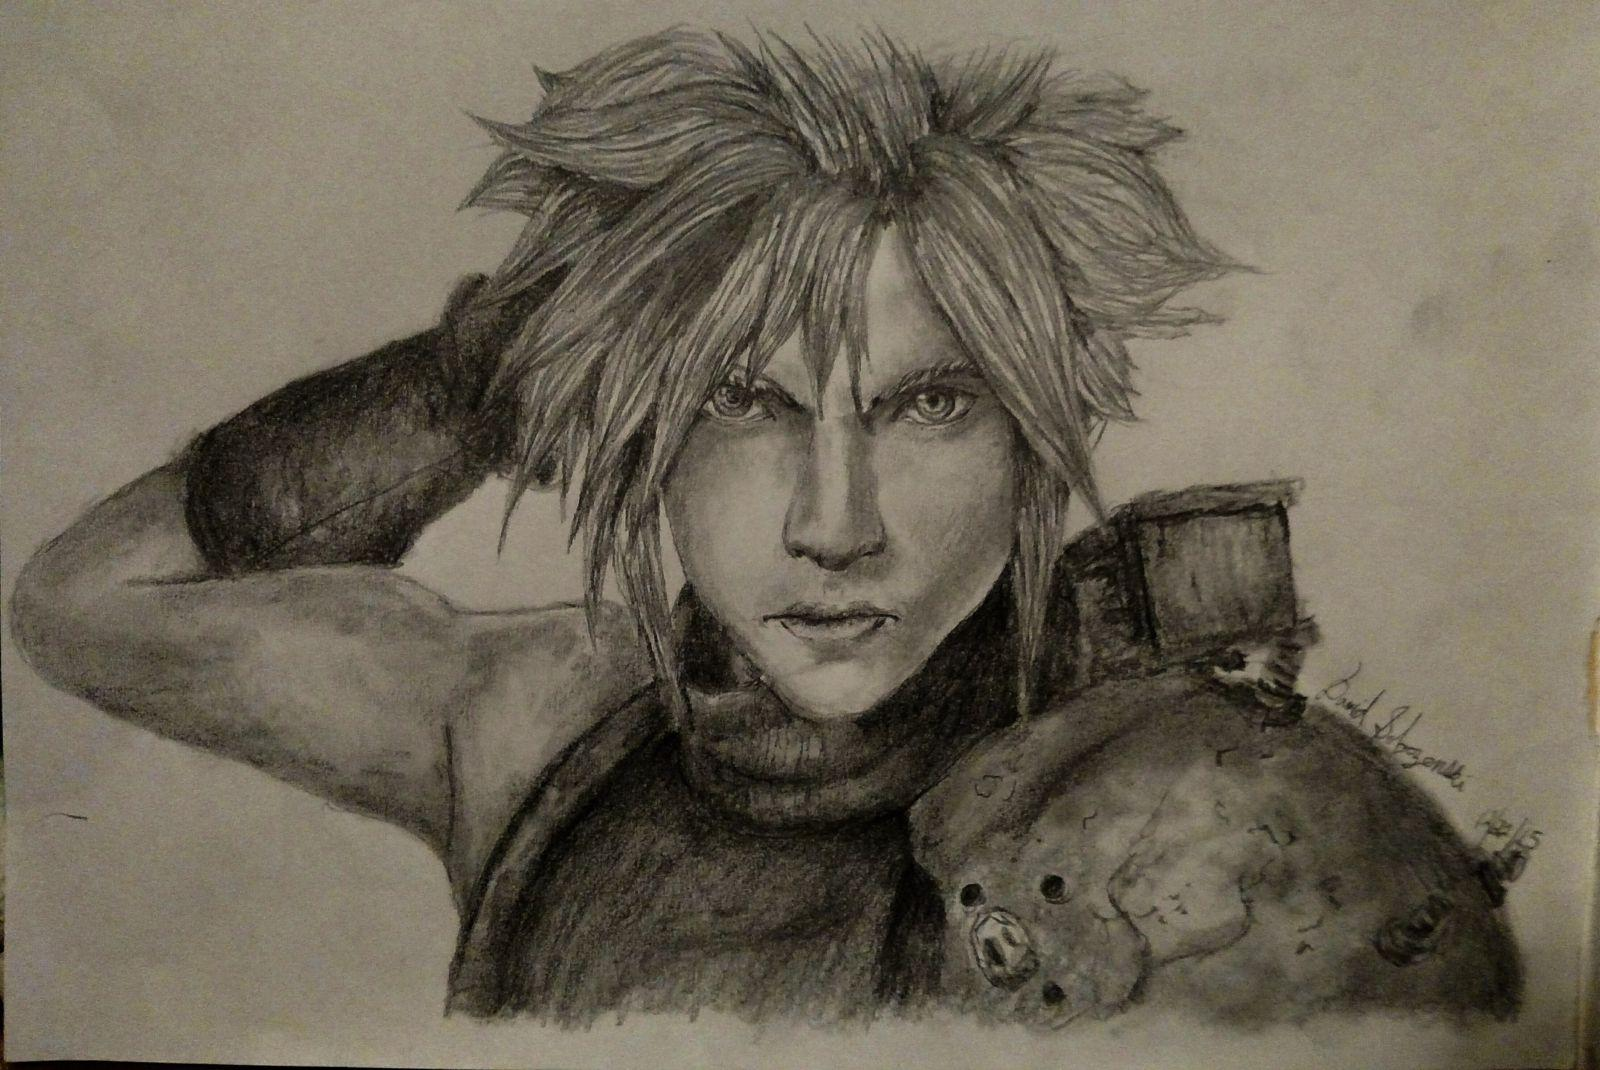 Cloud Strife - Final Fantasy VII Remake